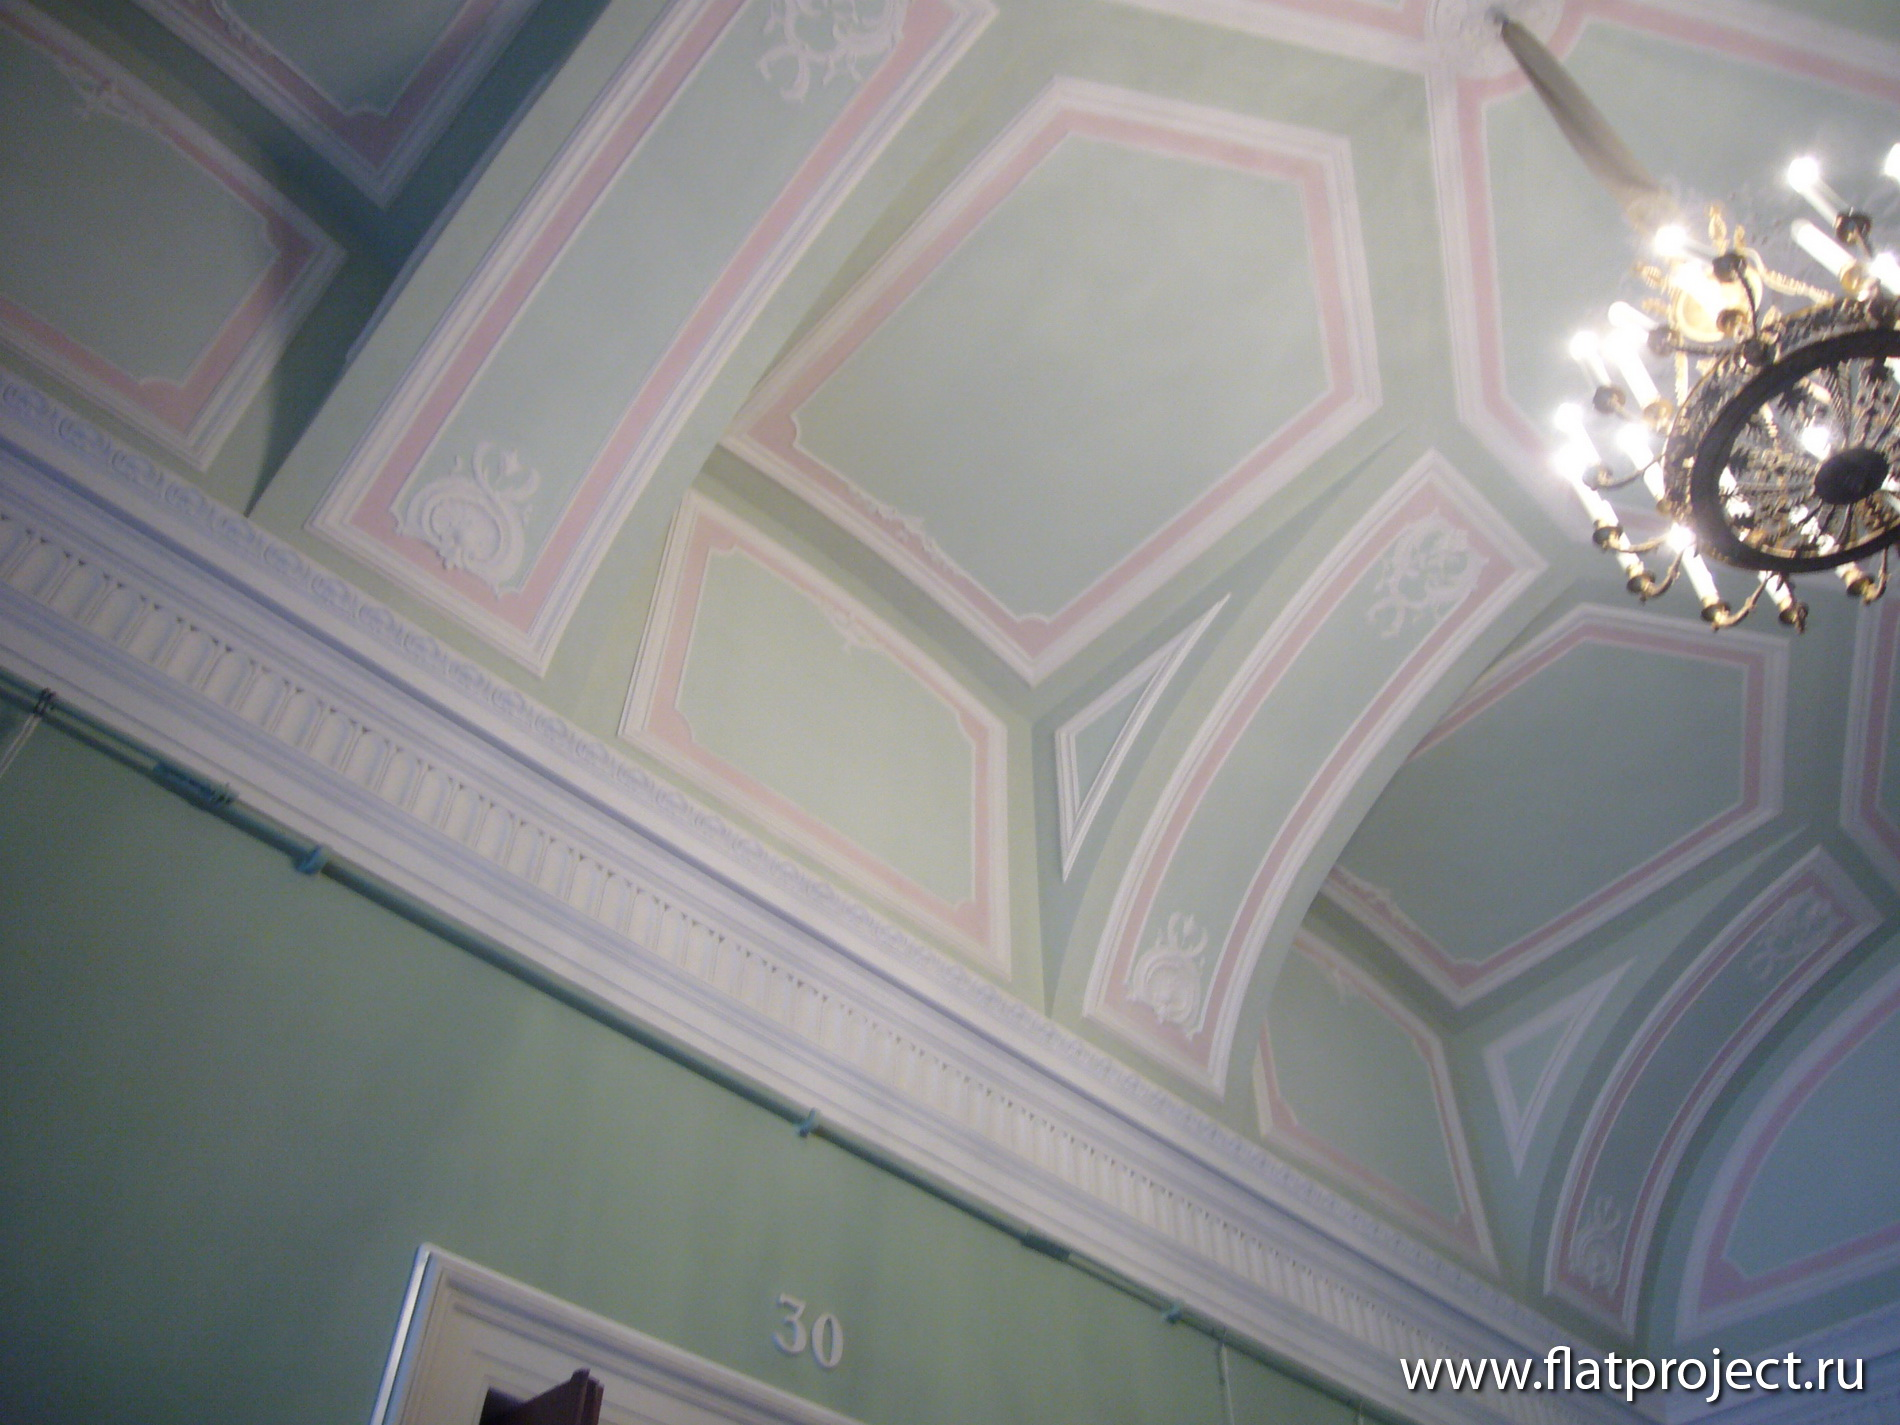 The State Russian museum interiors – photo 34